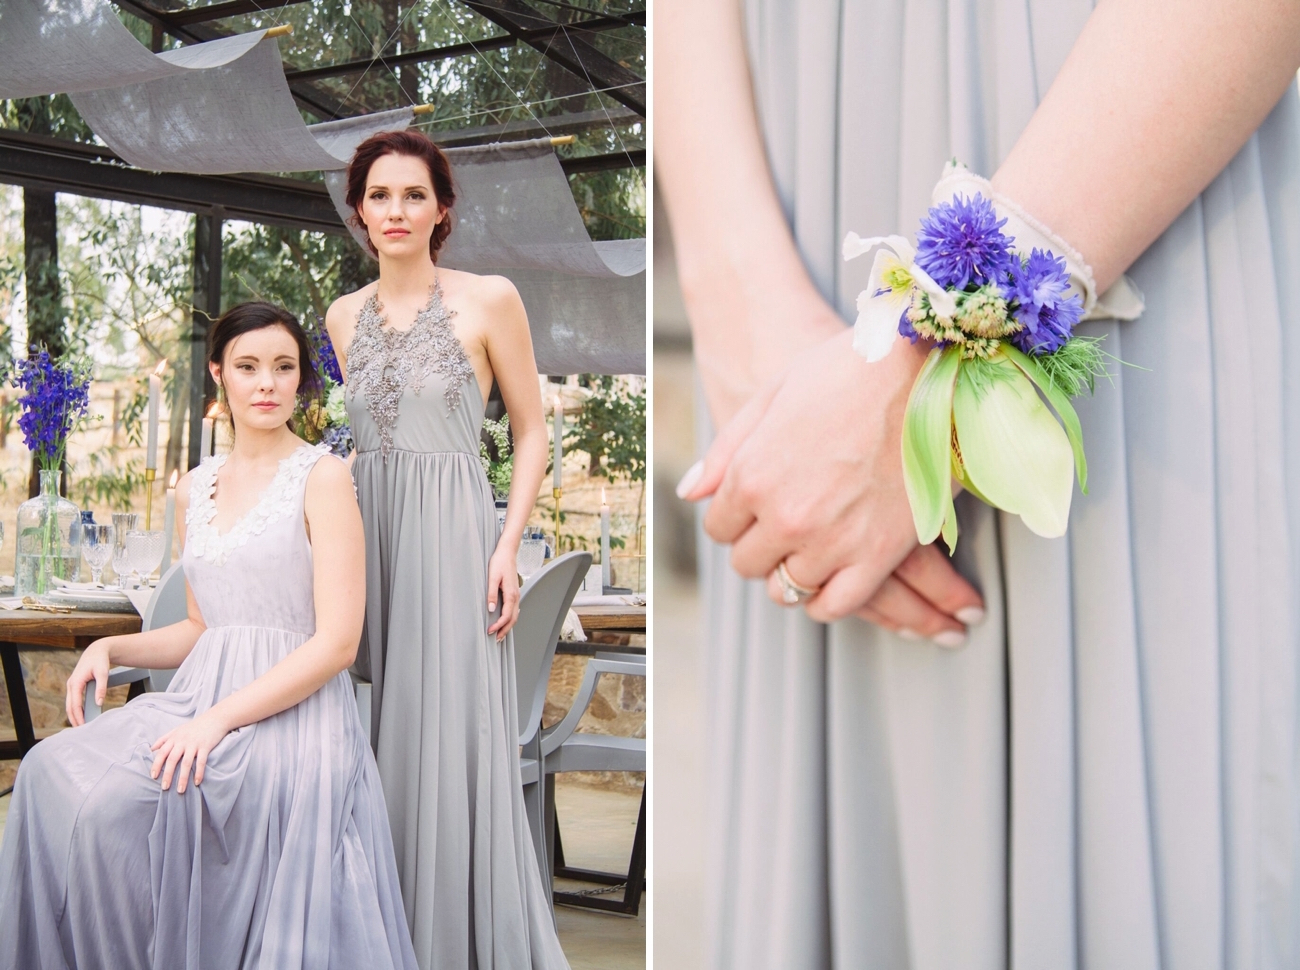 Wrist Corsage | Credit: Dust & Dreams Photography